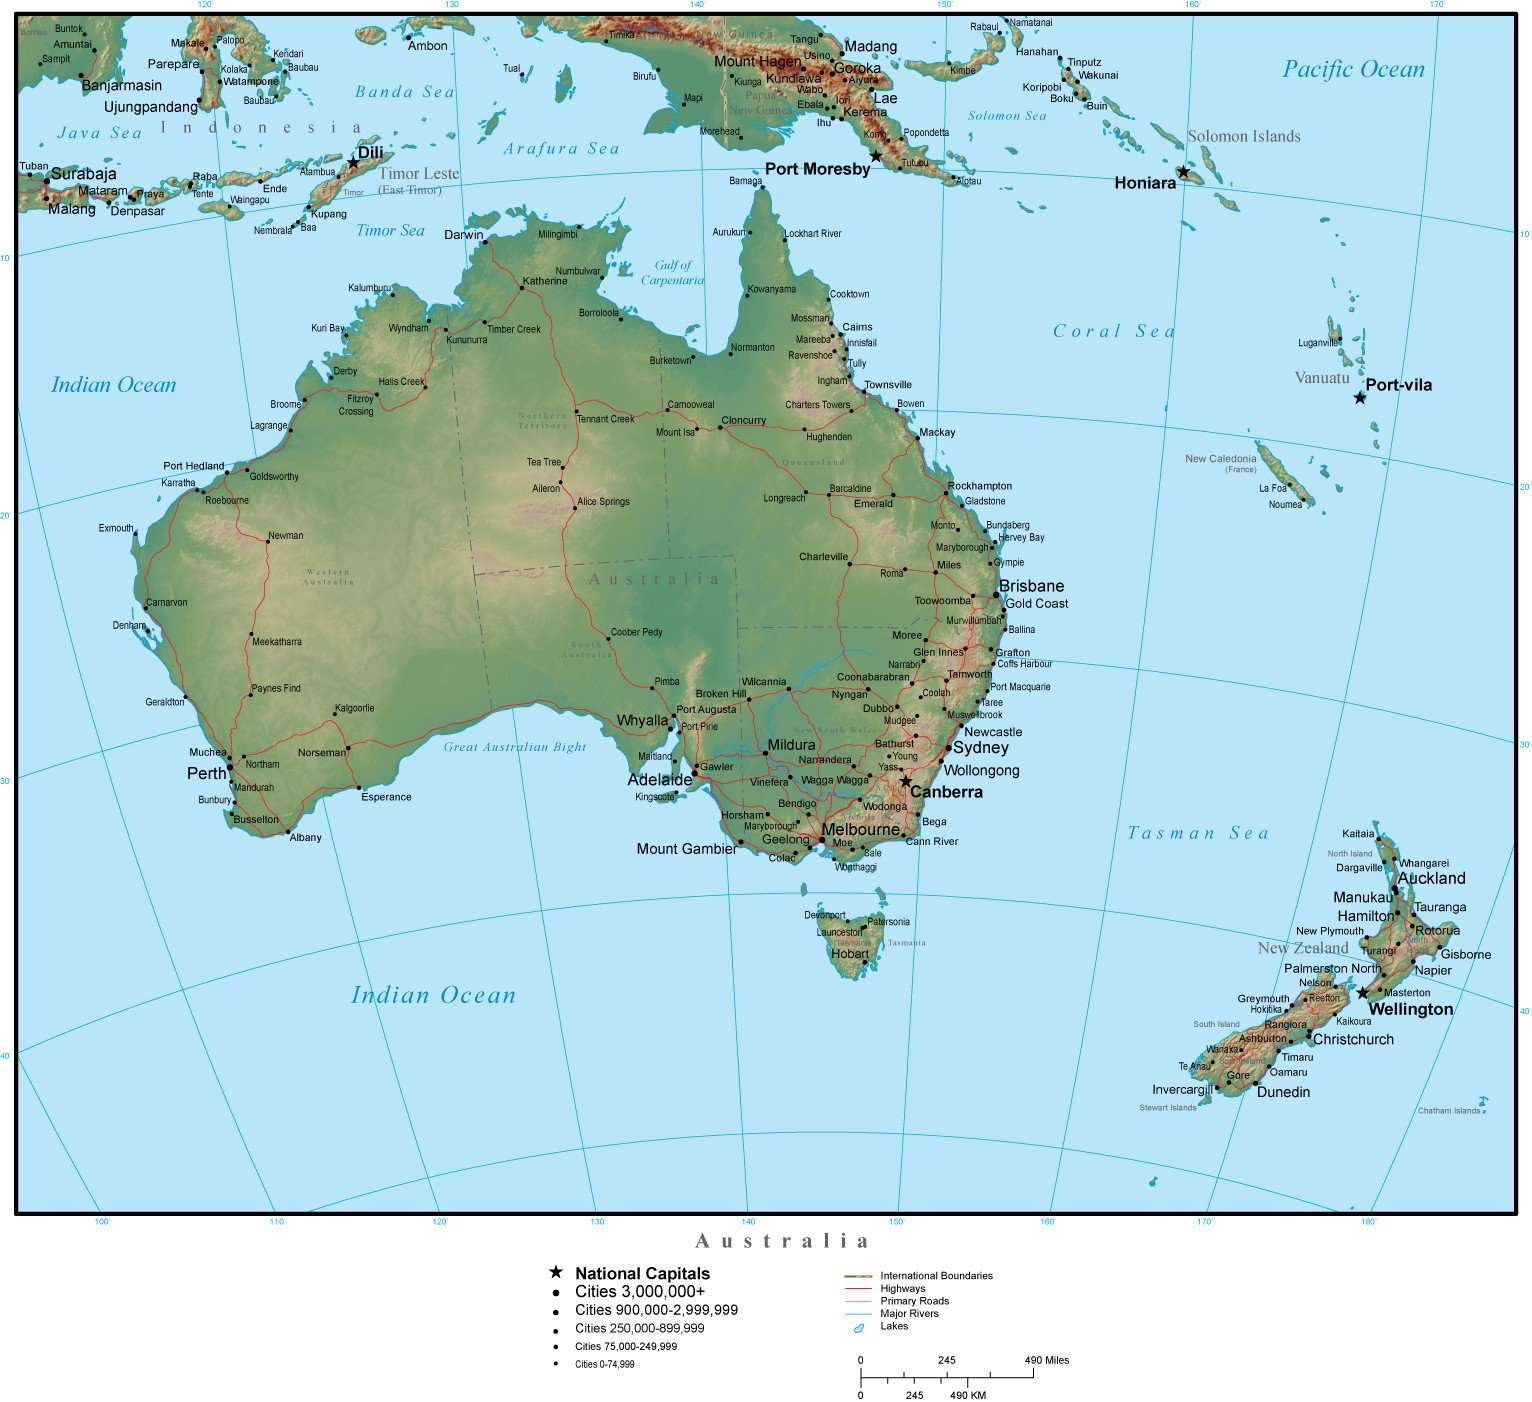 Australia Map With Capital Cities.Australia Map Plus Terrain With Countries Capitals Cities Roads And Water Features